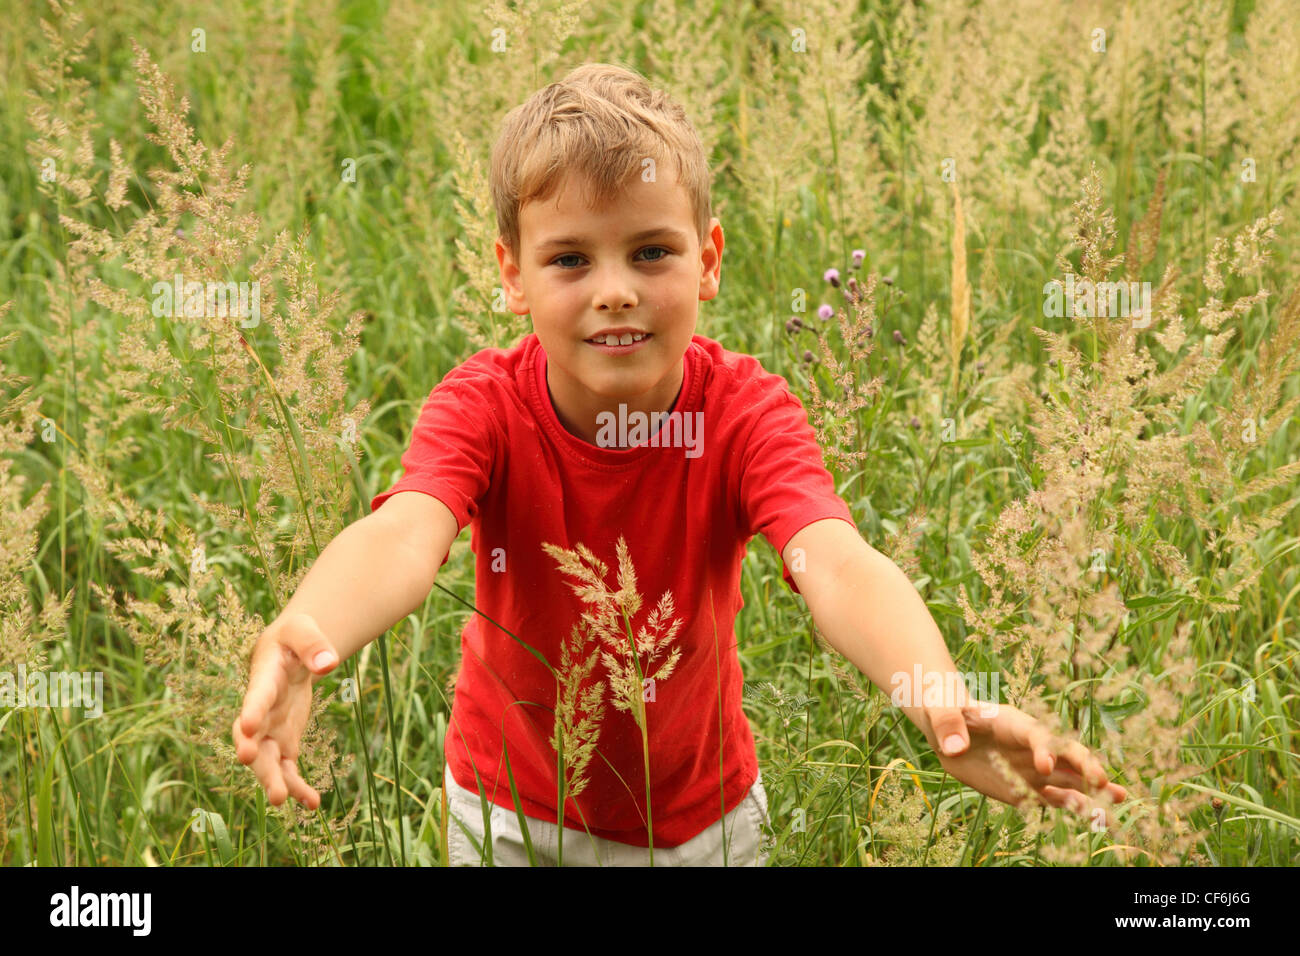 little boy in red shirt stands in high green grass and touches blade of grass - Stock Image